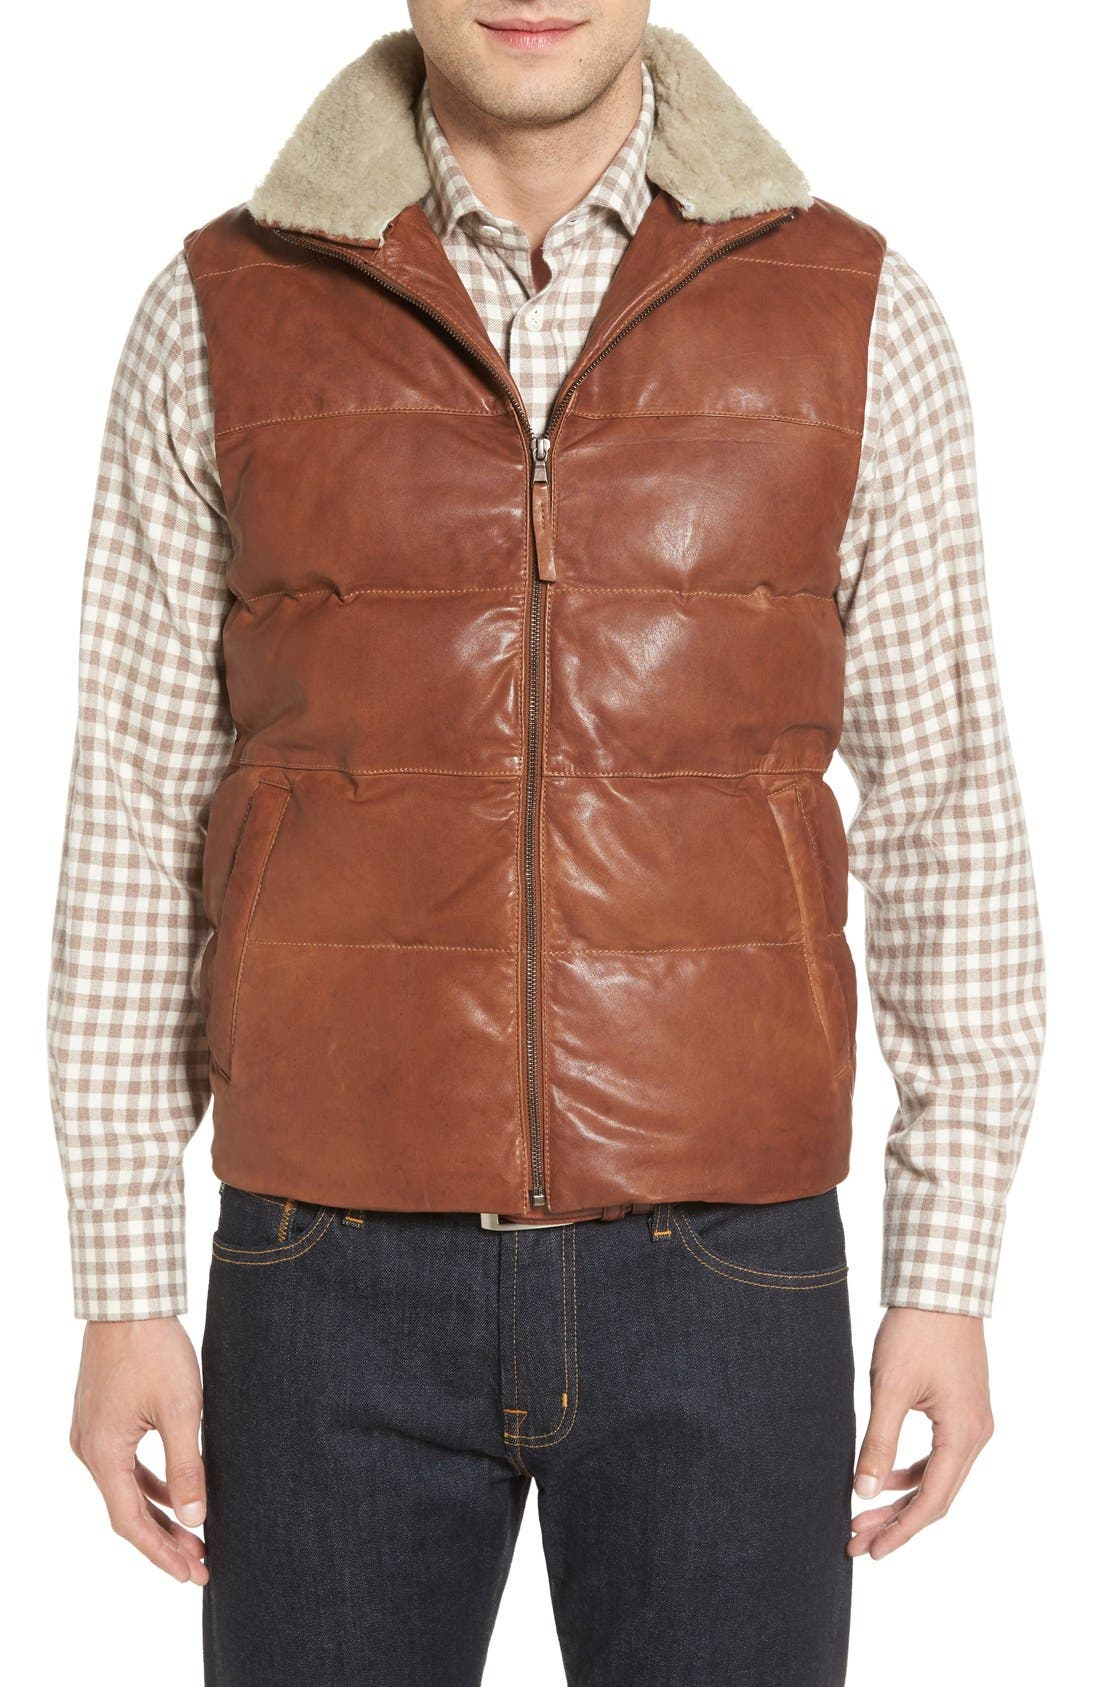 Main Image - Missani Le Collezioni Quilted Leather Vest with Removable Genuine Shearling Collar